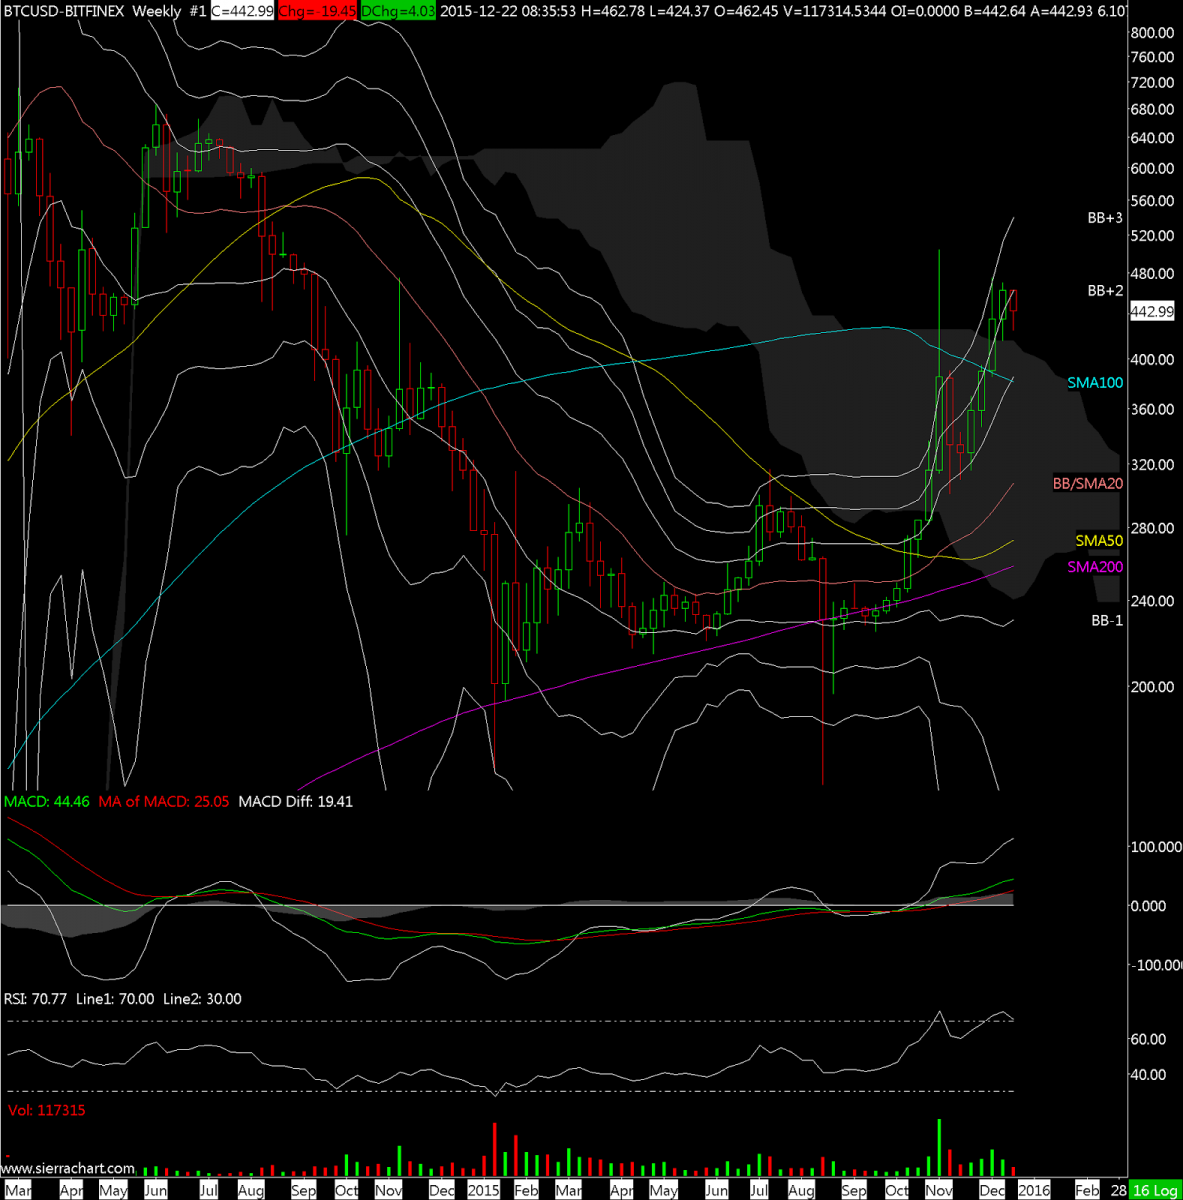 BTCUSD-BITFINEX  Weekly  #1 2015-12-22  08_37_20.071.png